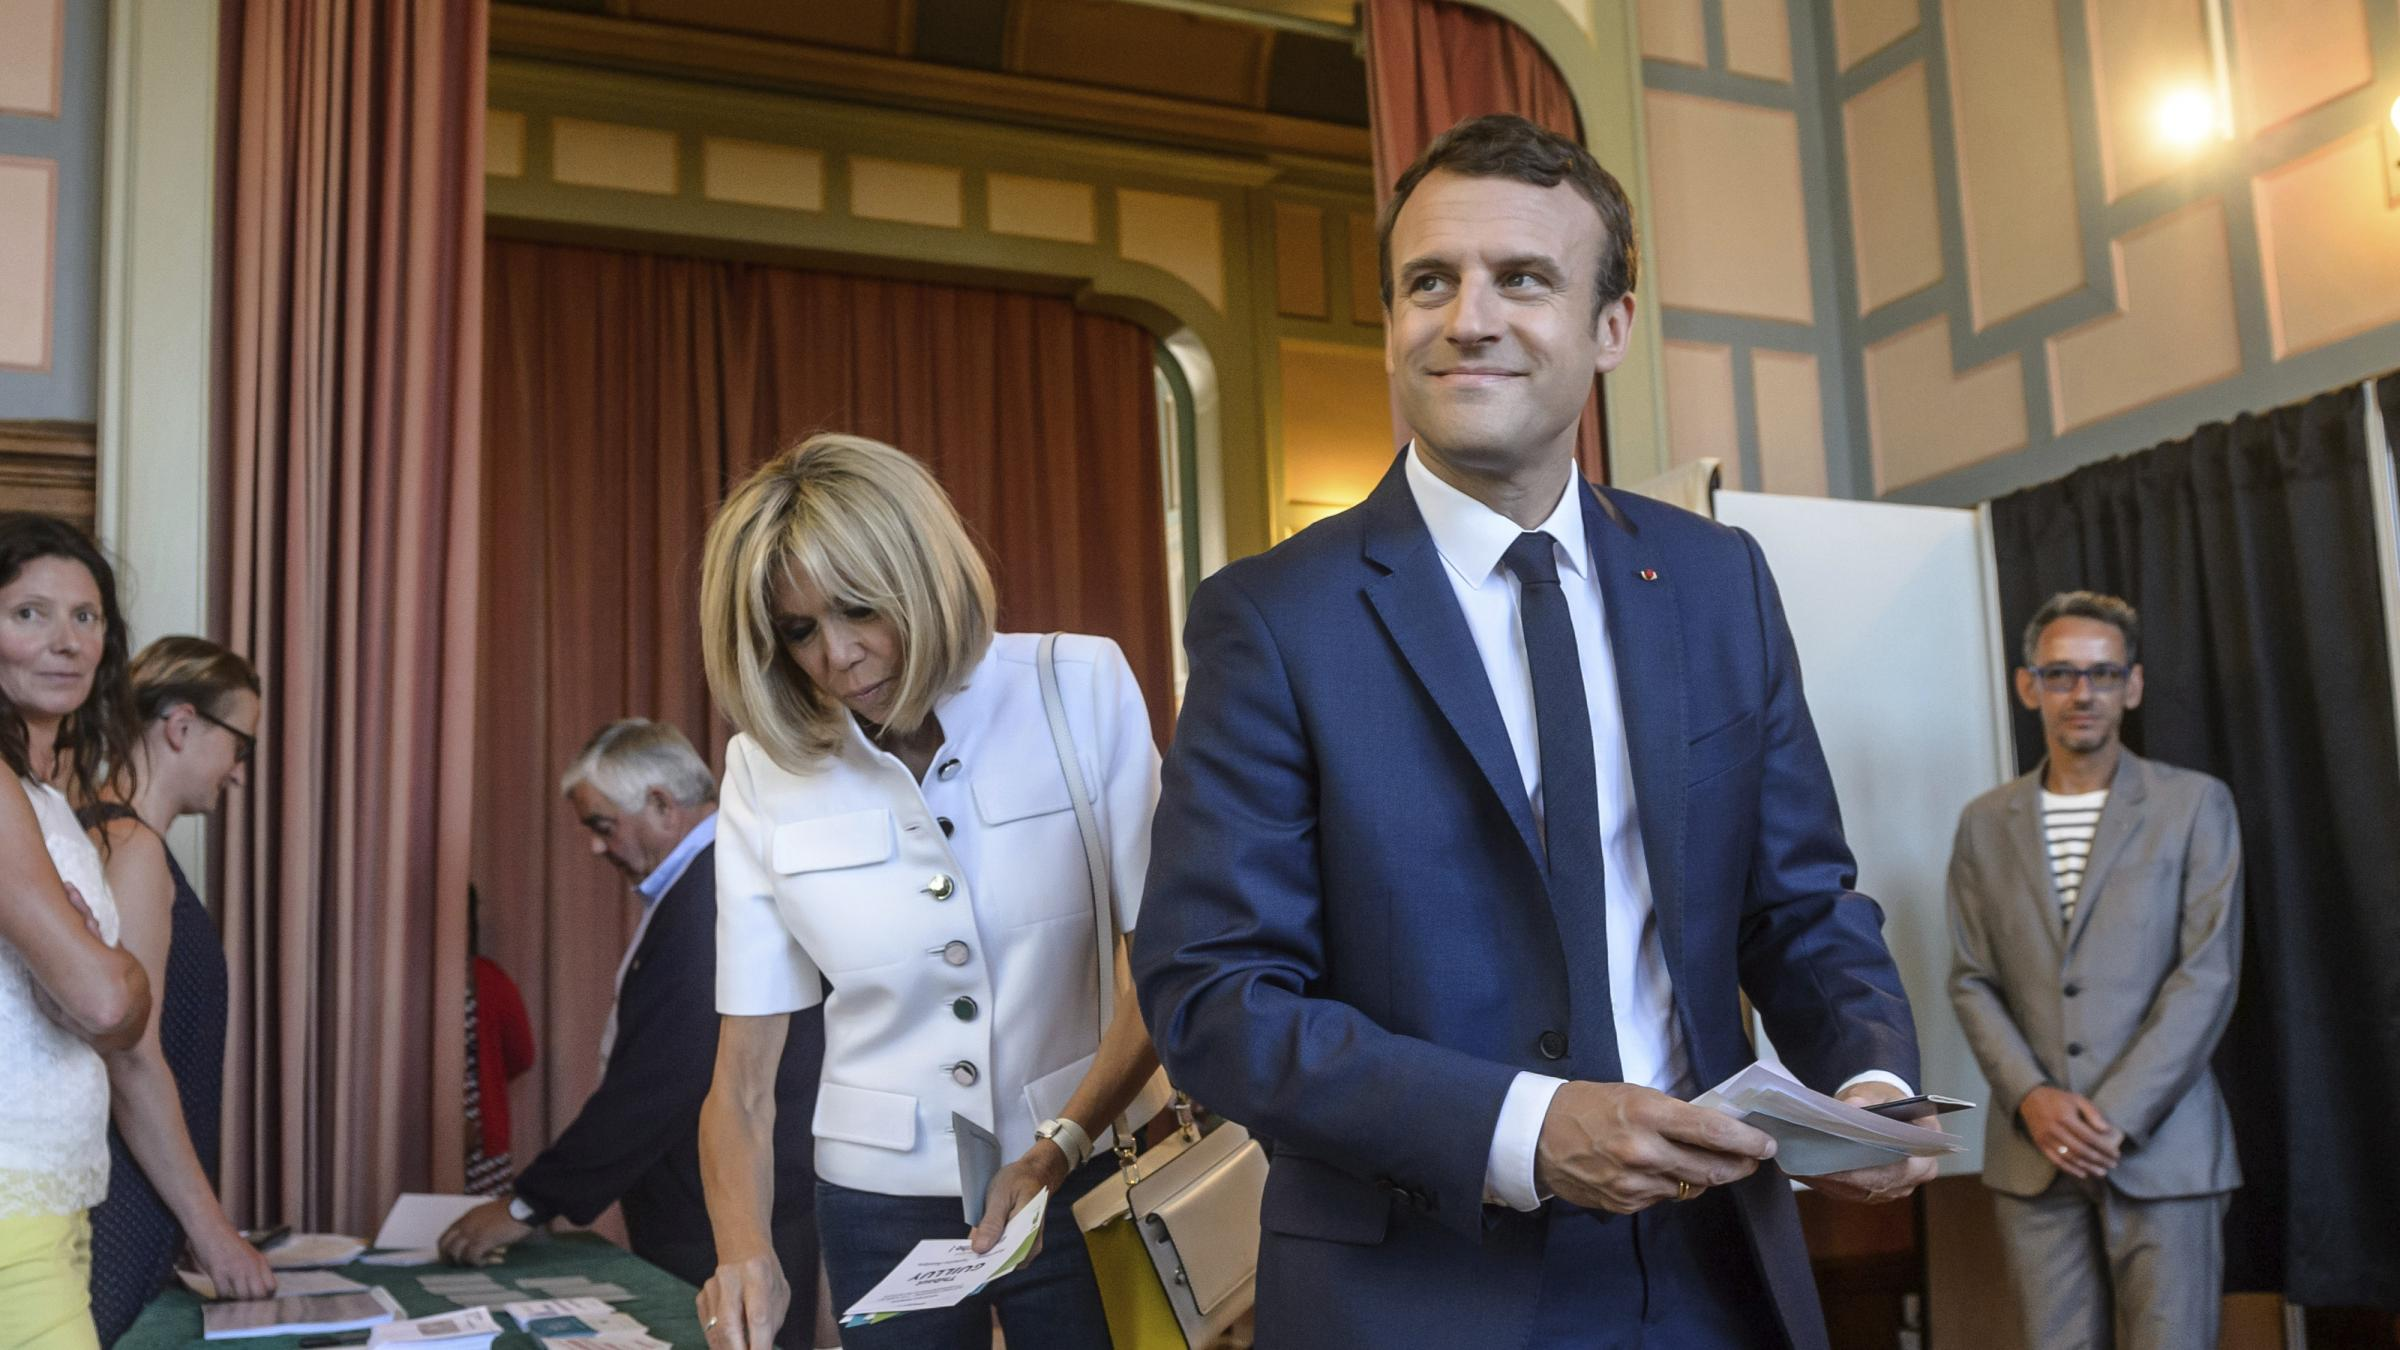 Macron's party wins first round of French legislative vote with 28.21%